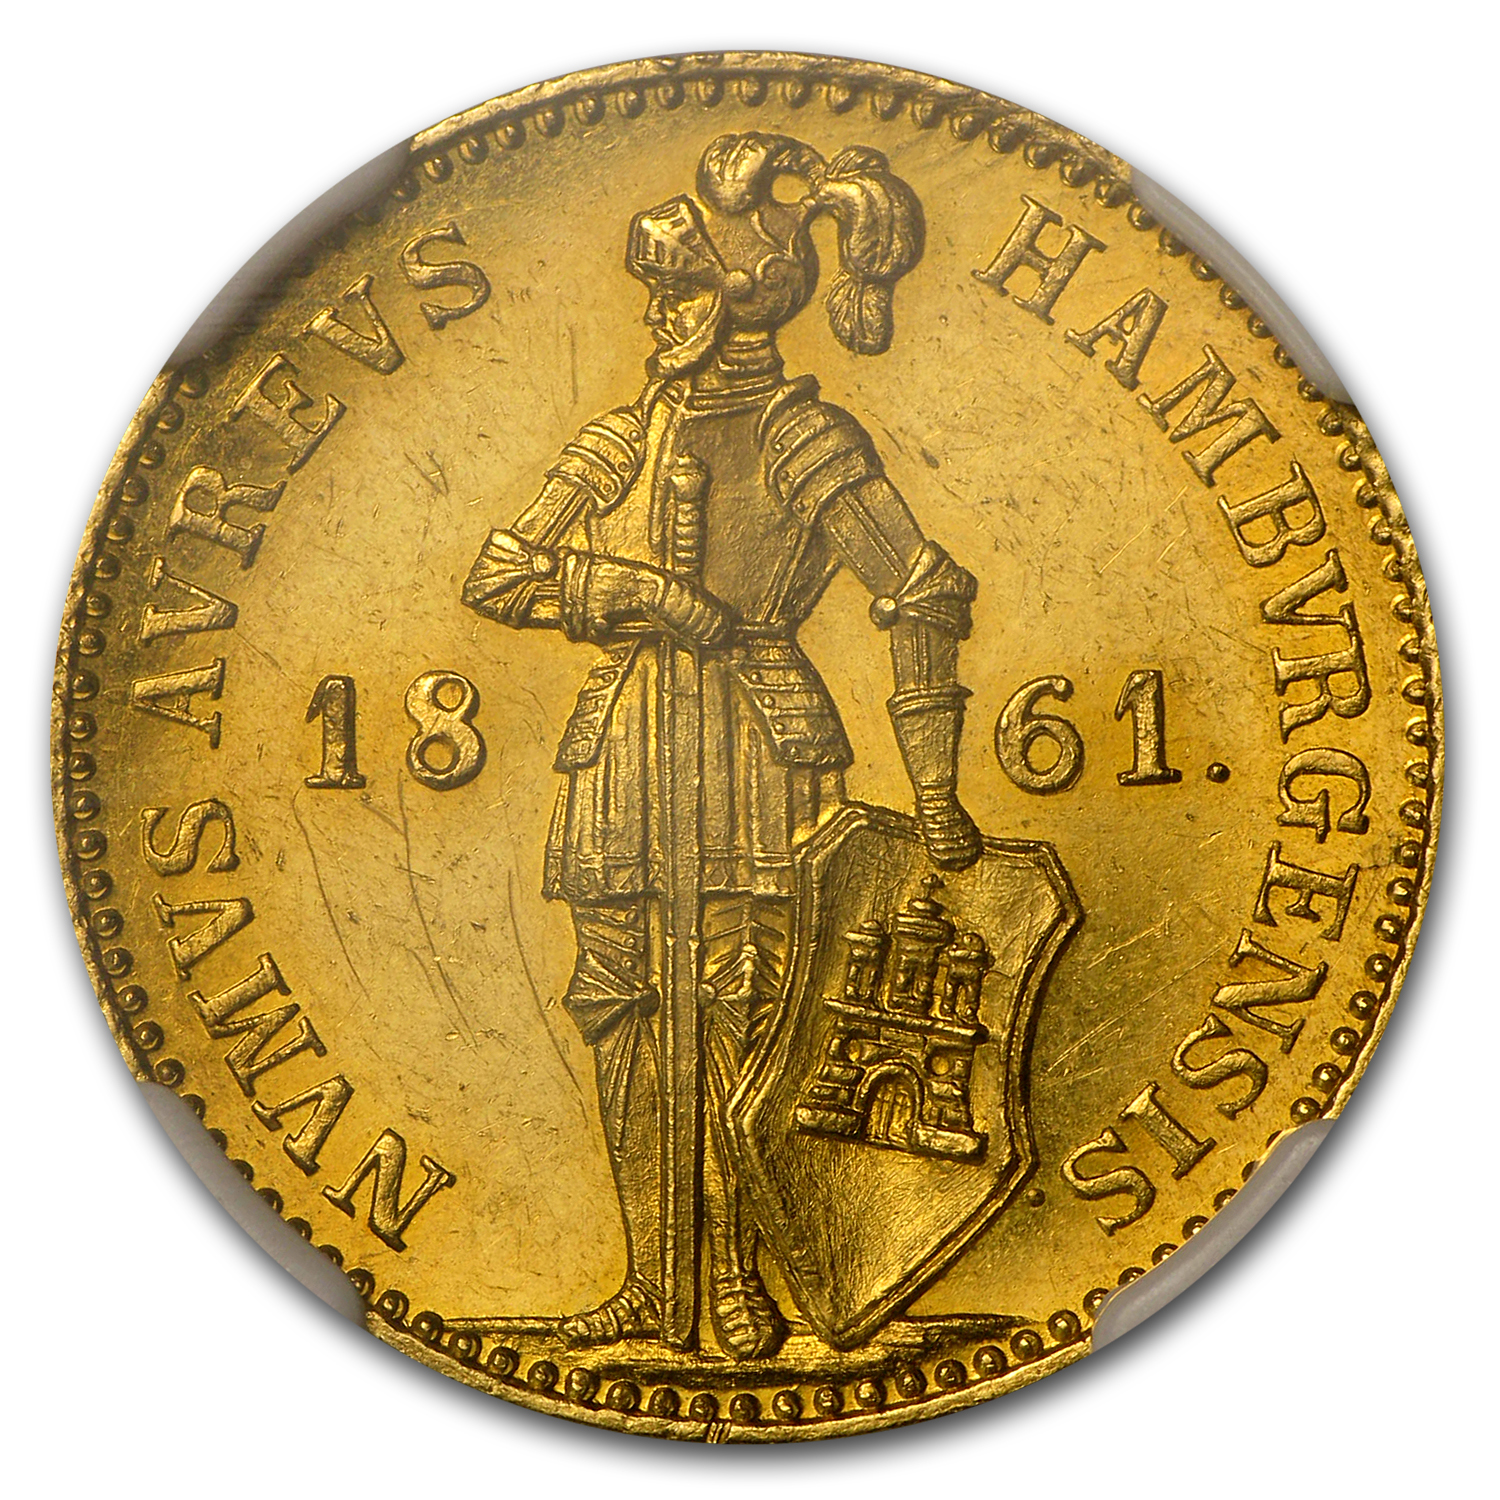 1861 Hamburg Gold Ducat MS-62 NGC